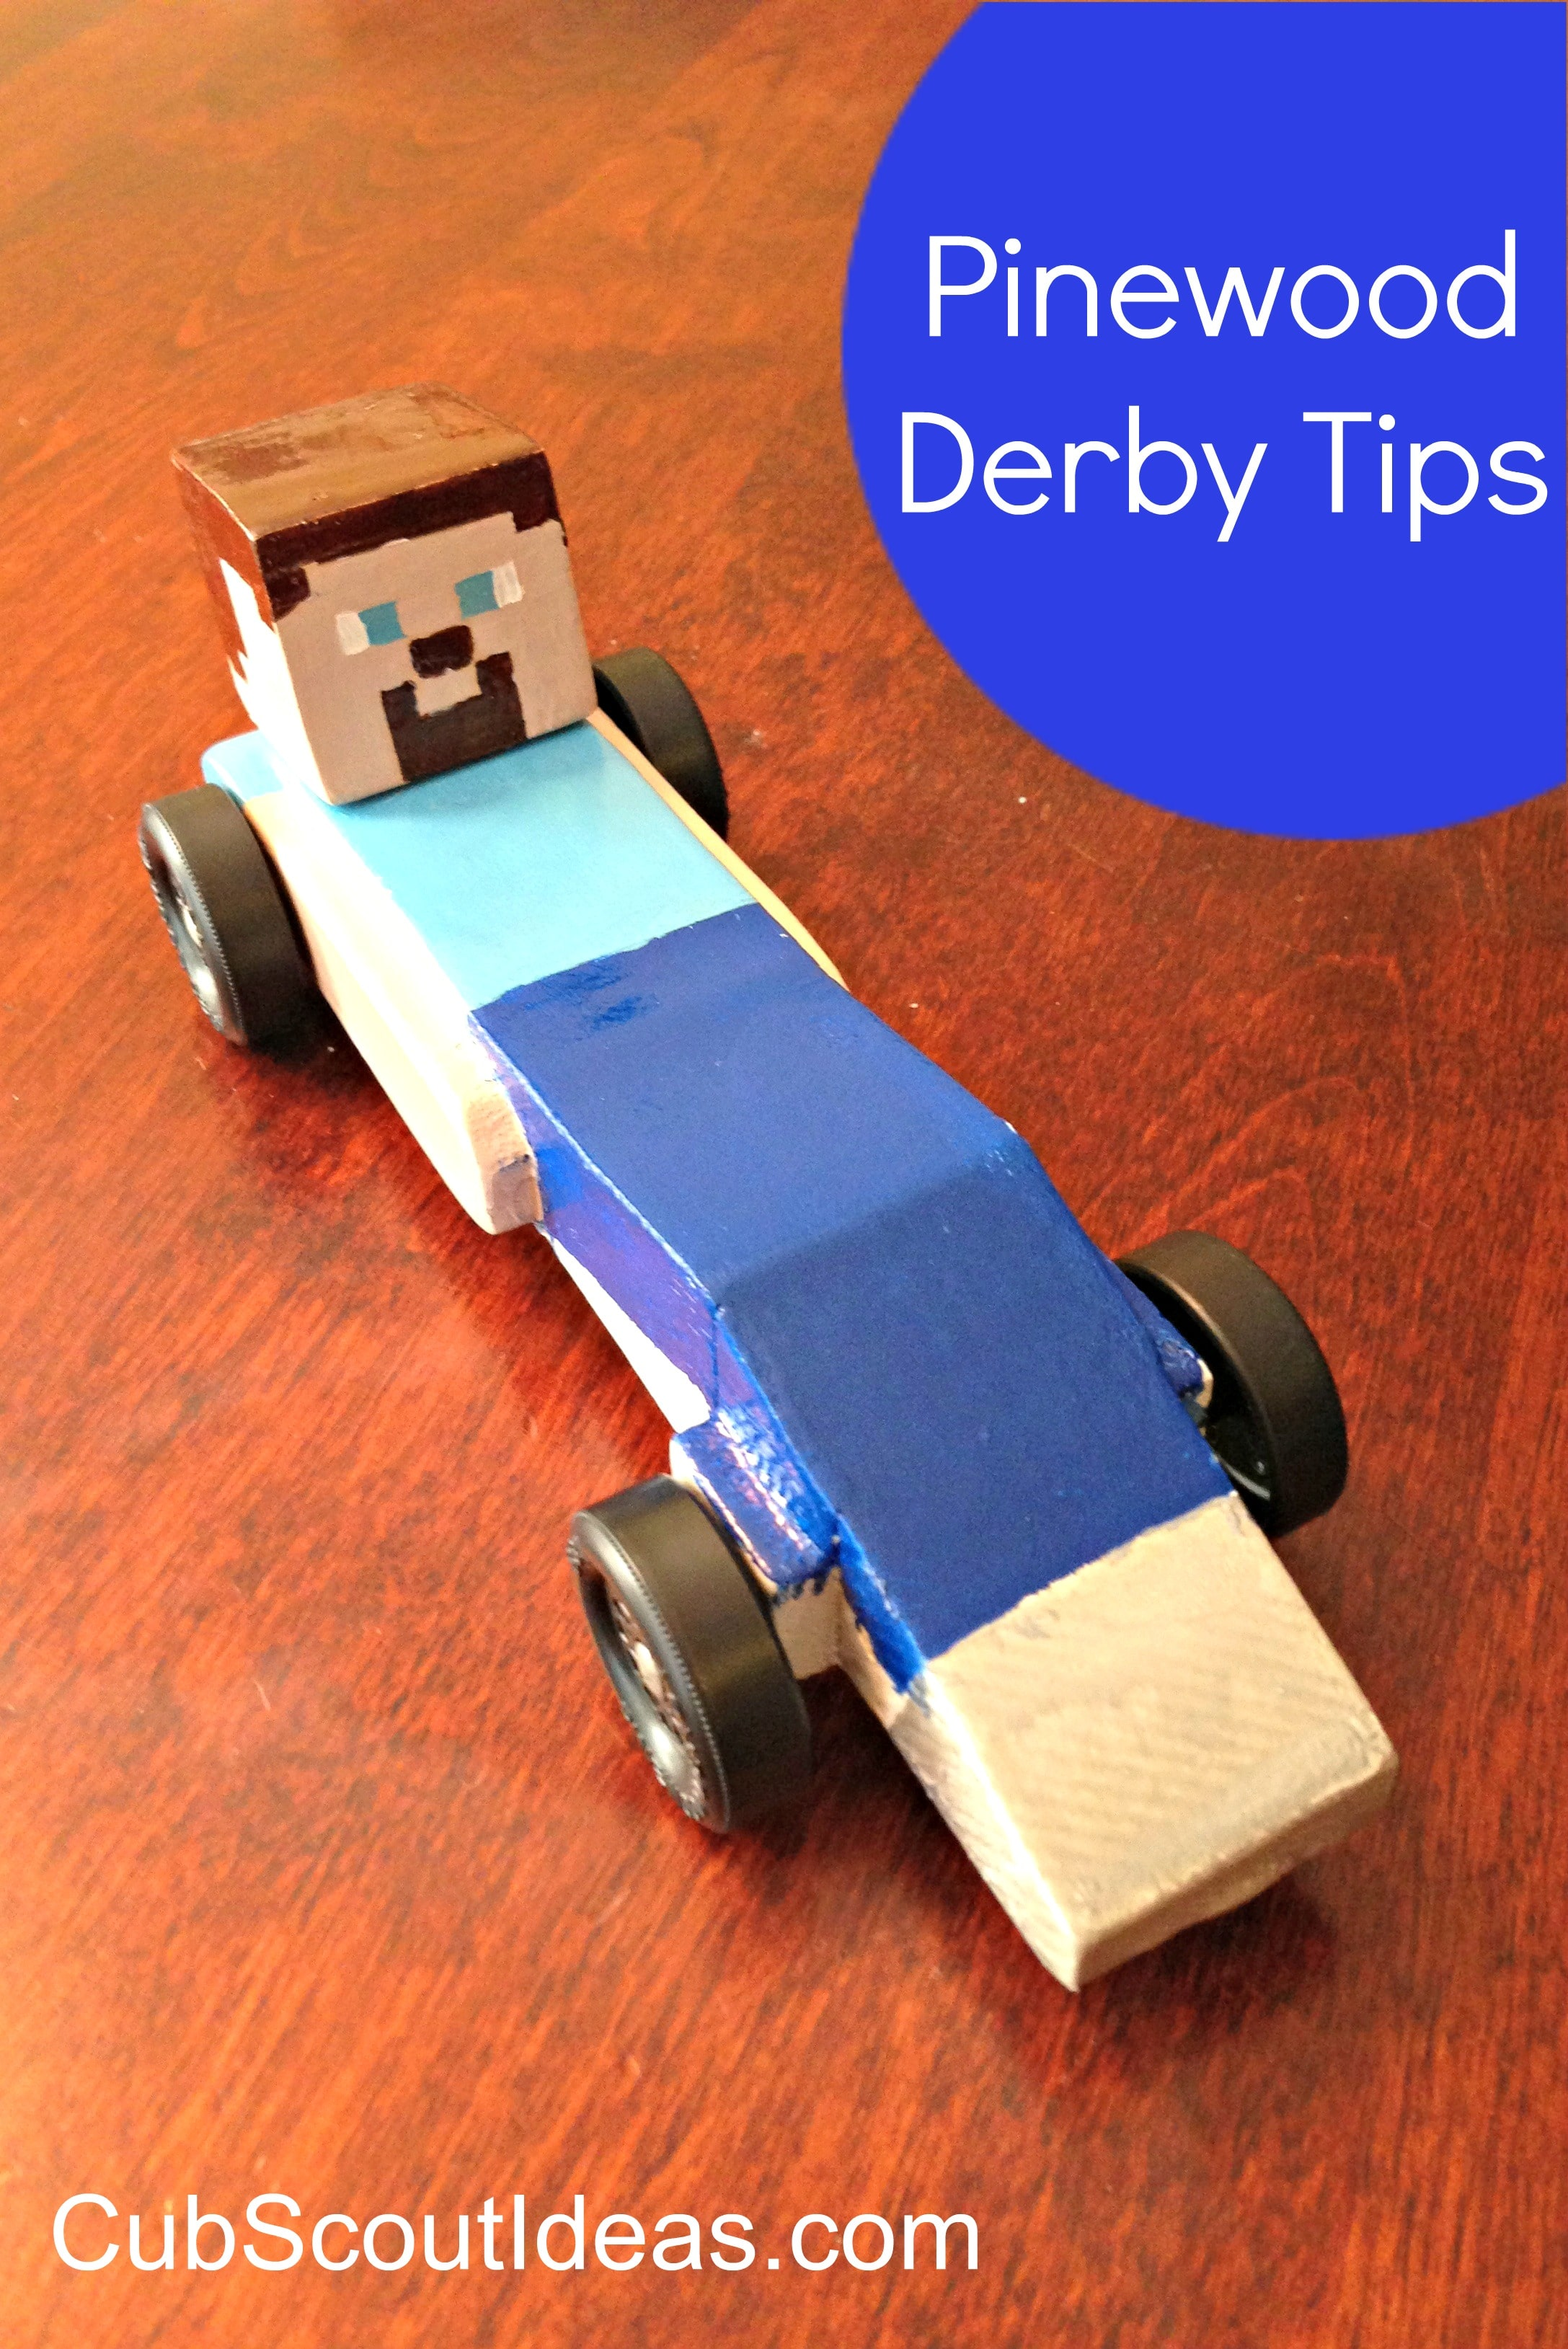 Pinewood Derby Resources